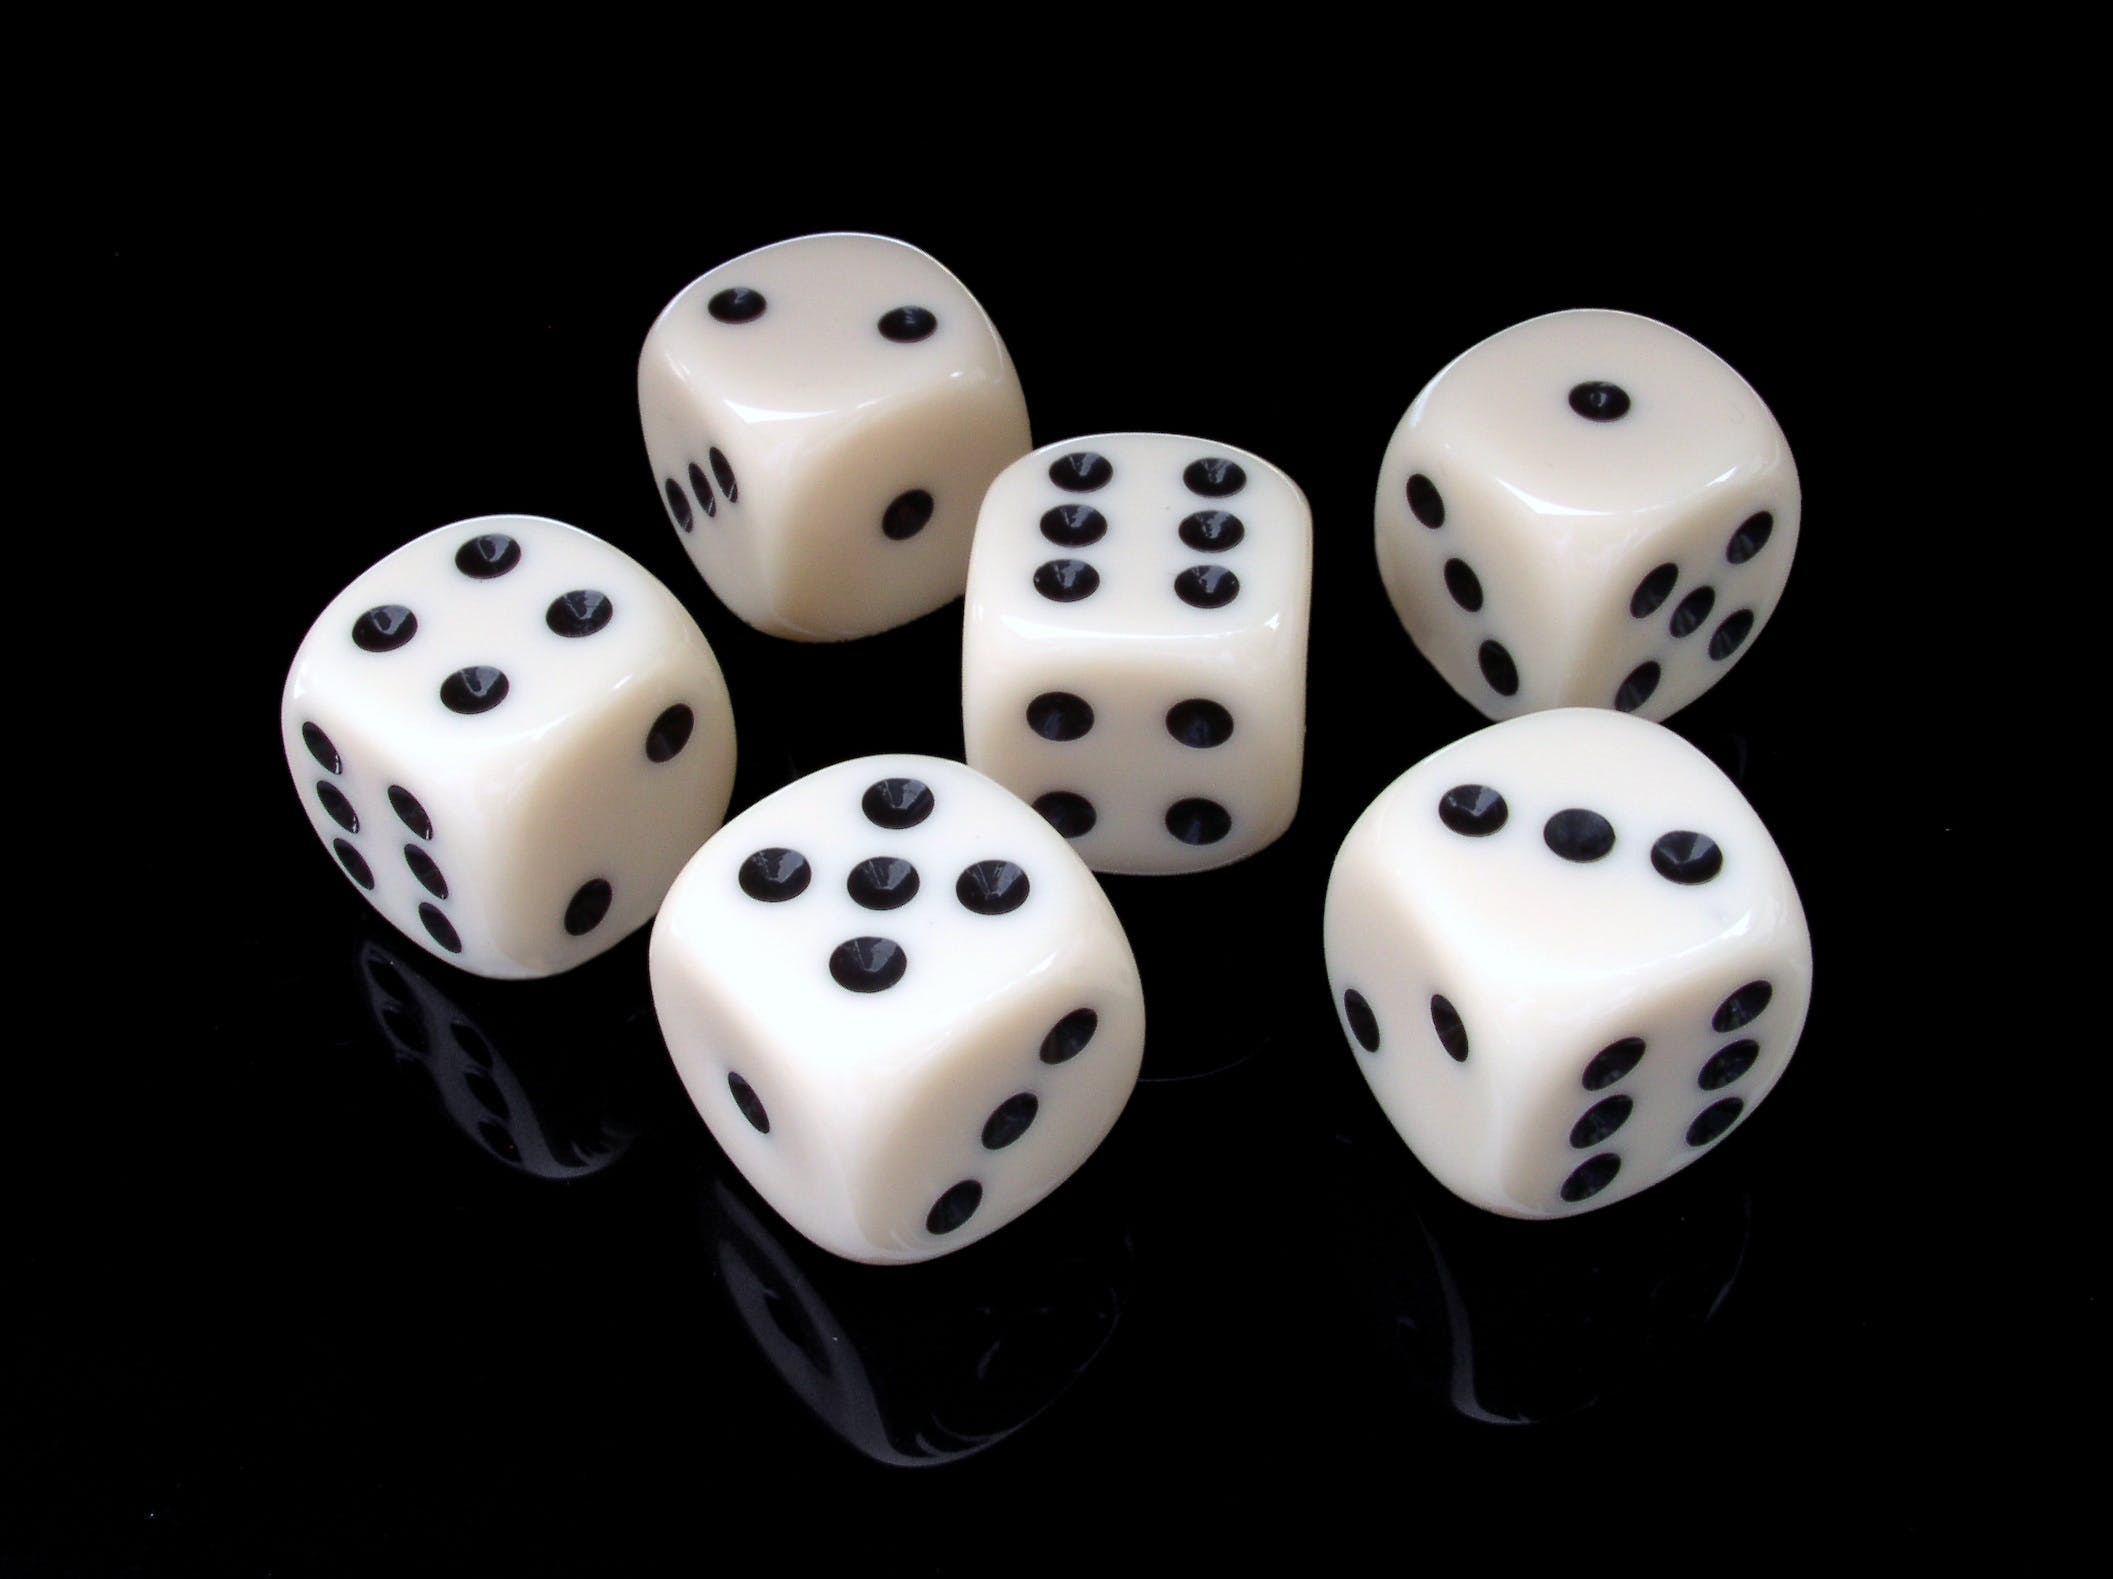 6 Pieces of Black and White Dice